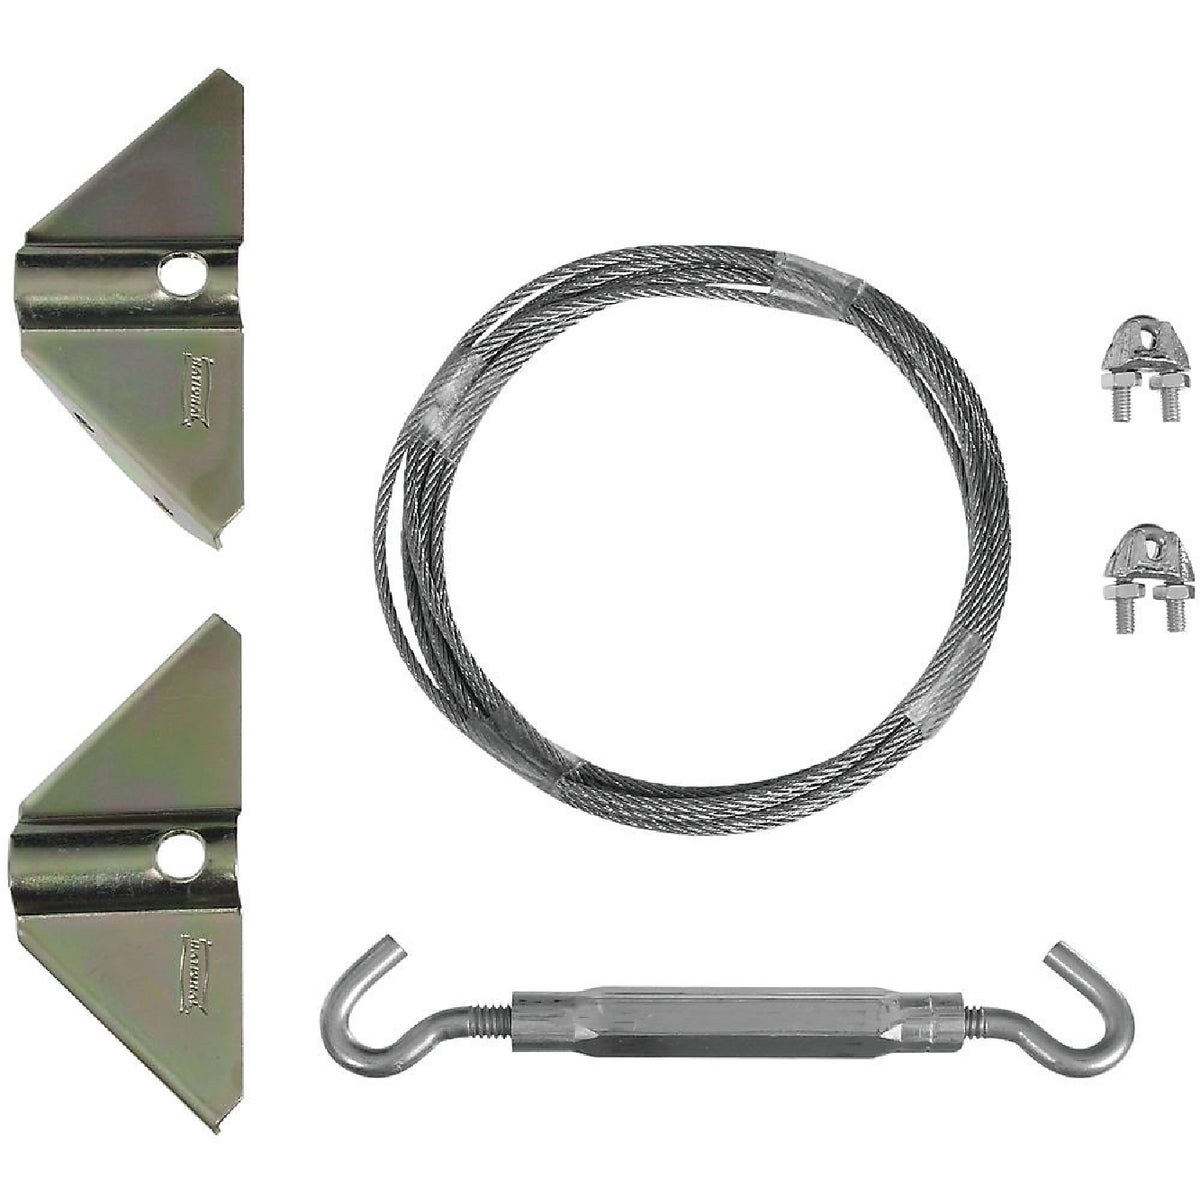 ANTI-SAG GATE KIT ZN